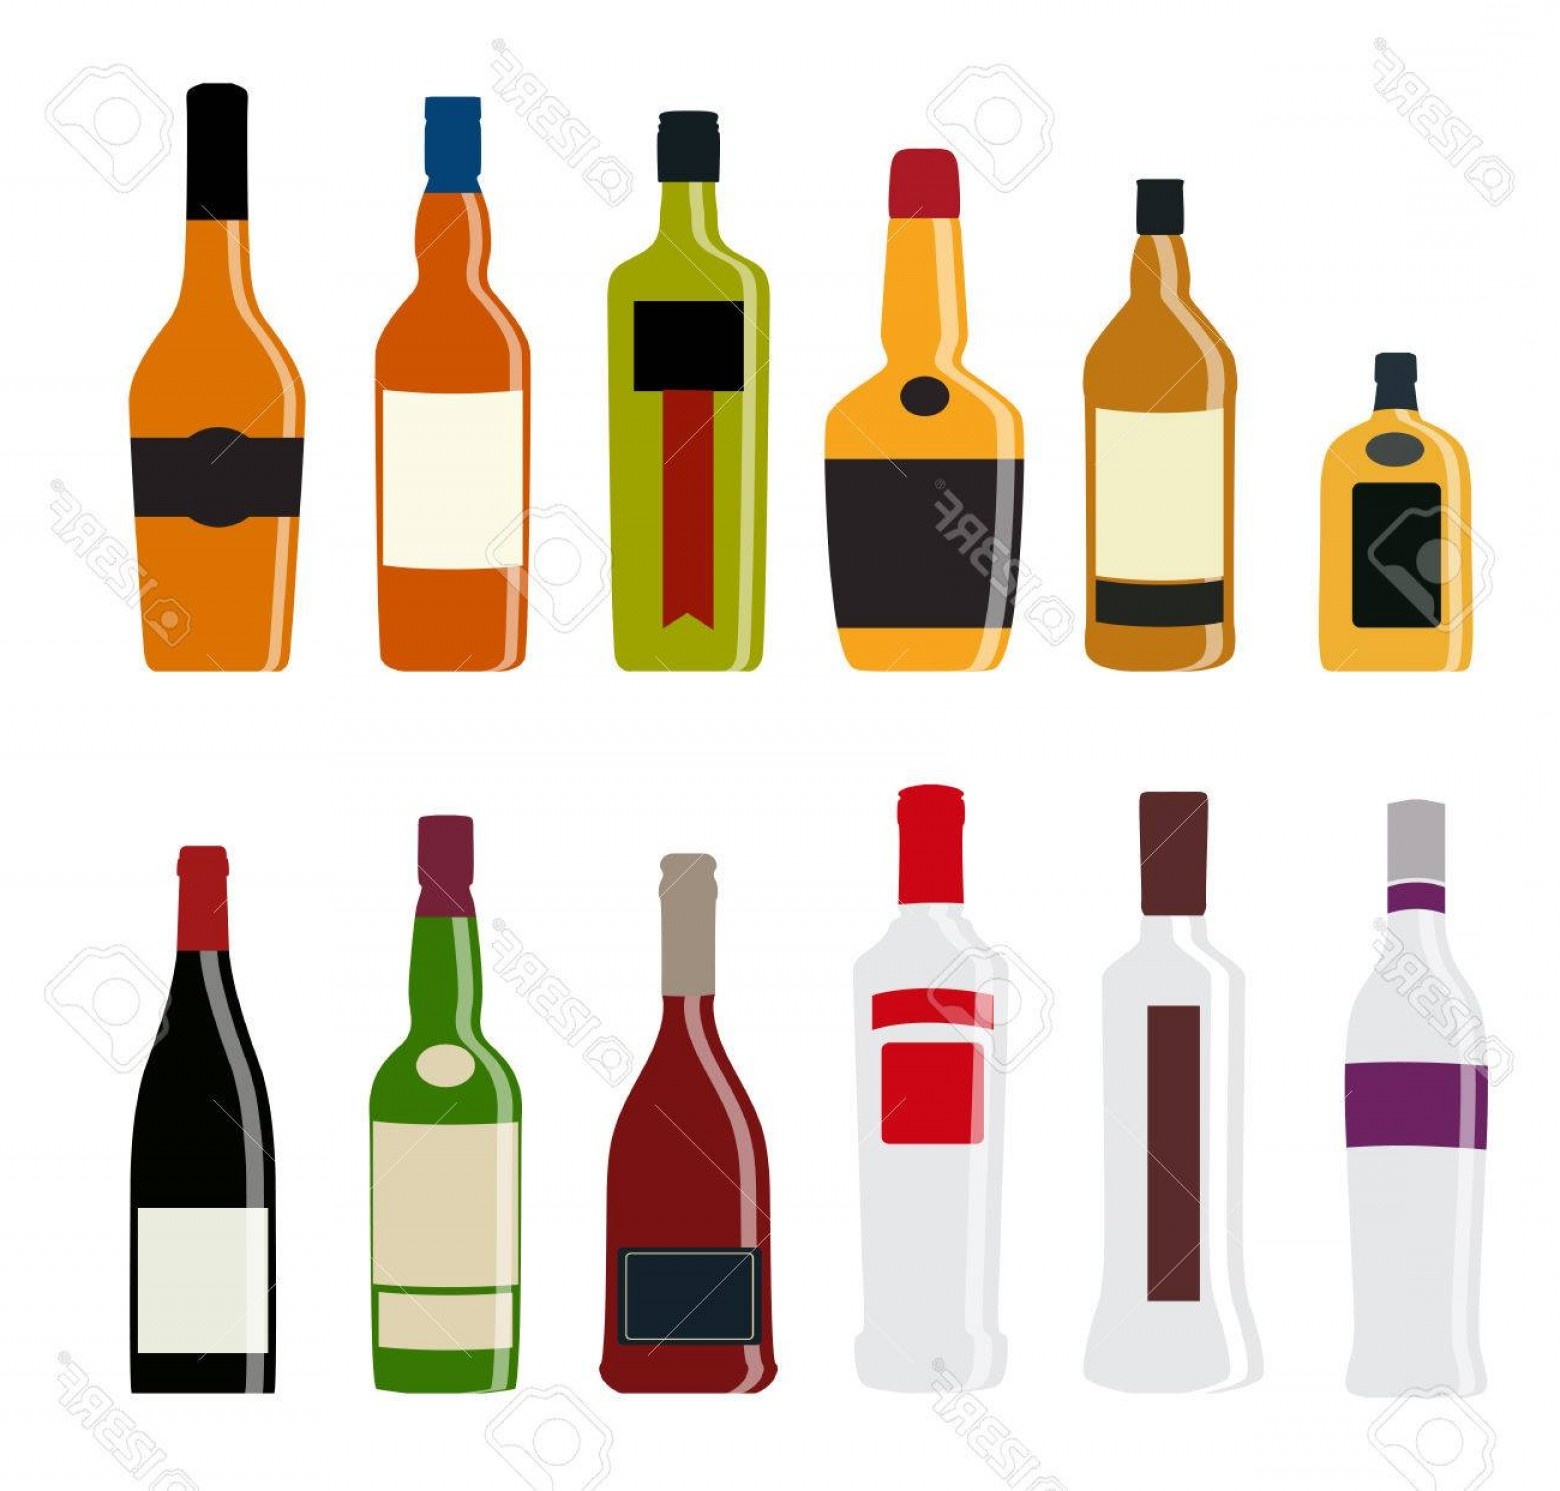 Alcohol Vector: Photostock Vector Vector Illustration Of Silhouette Alcohol Bottle